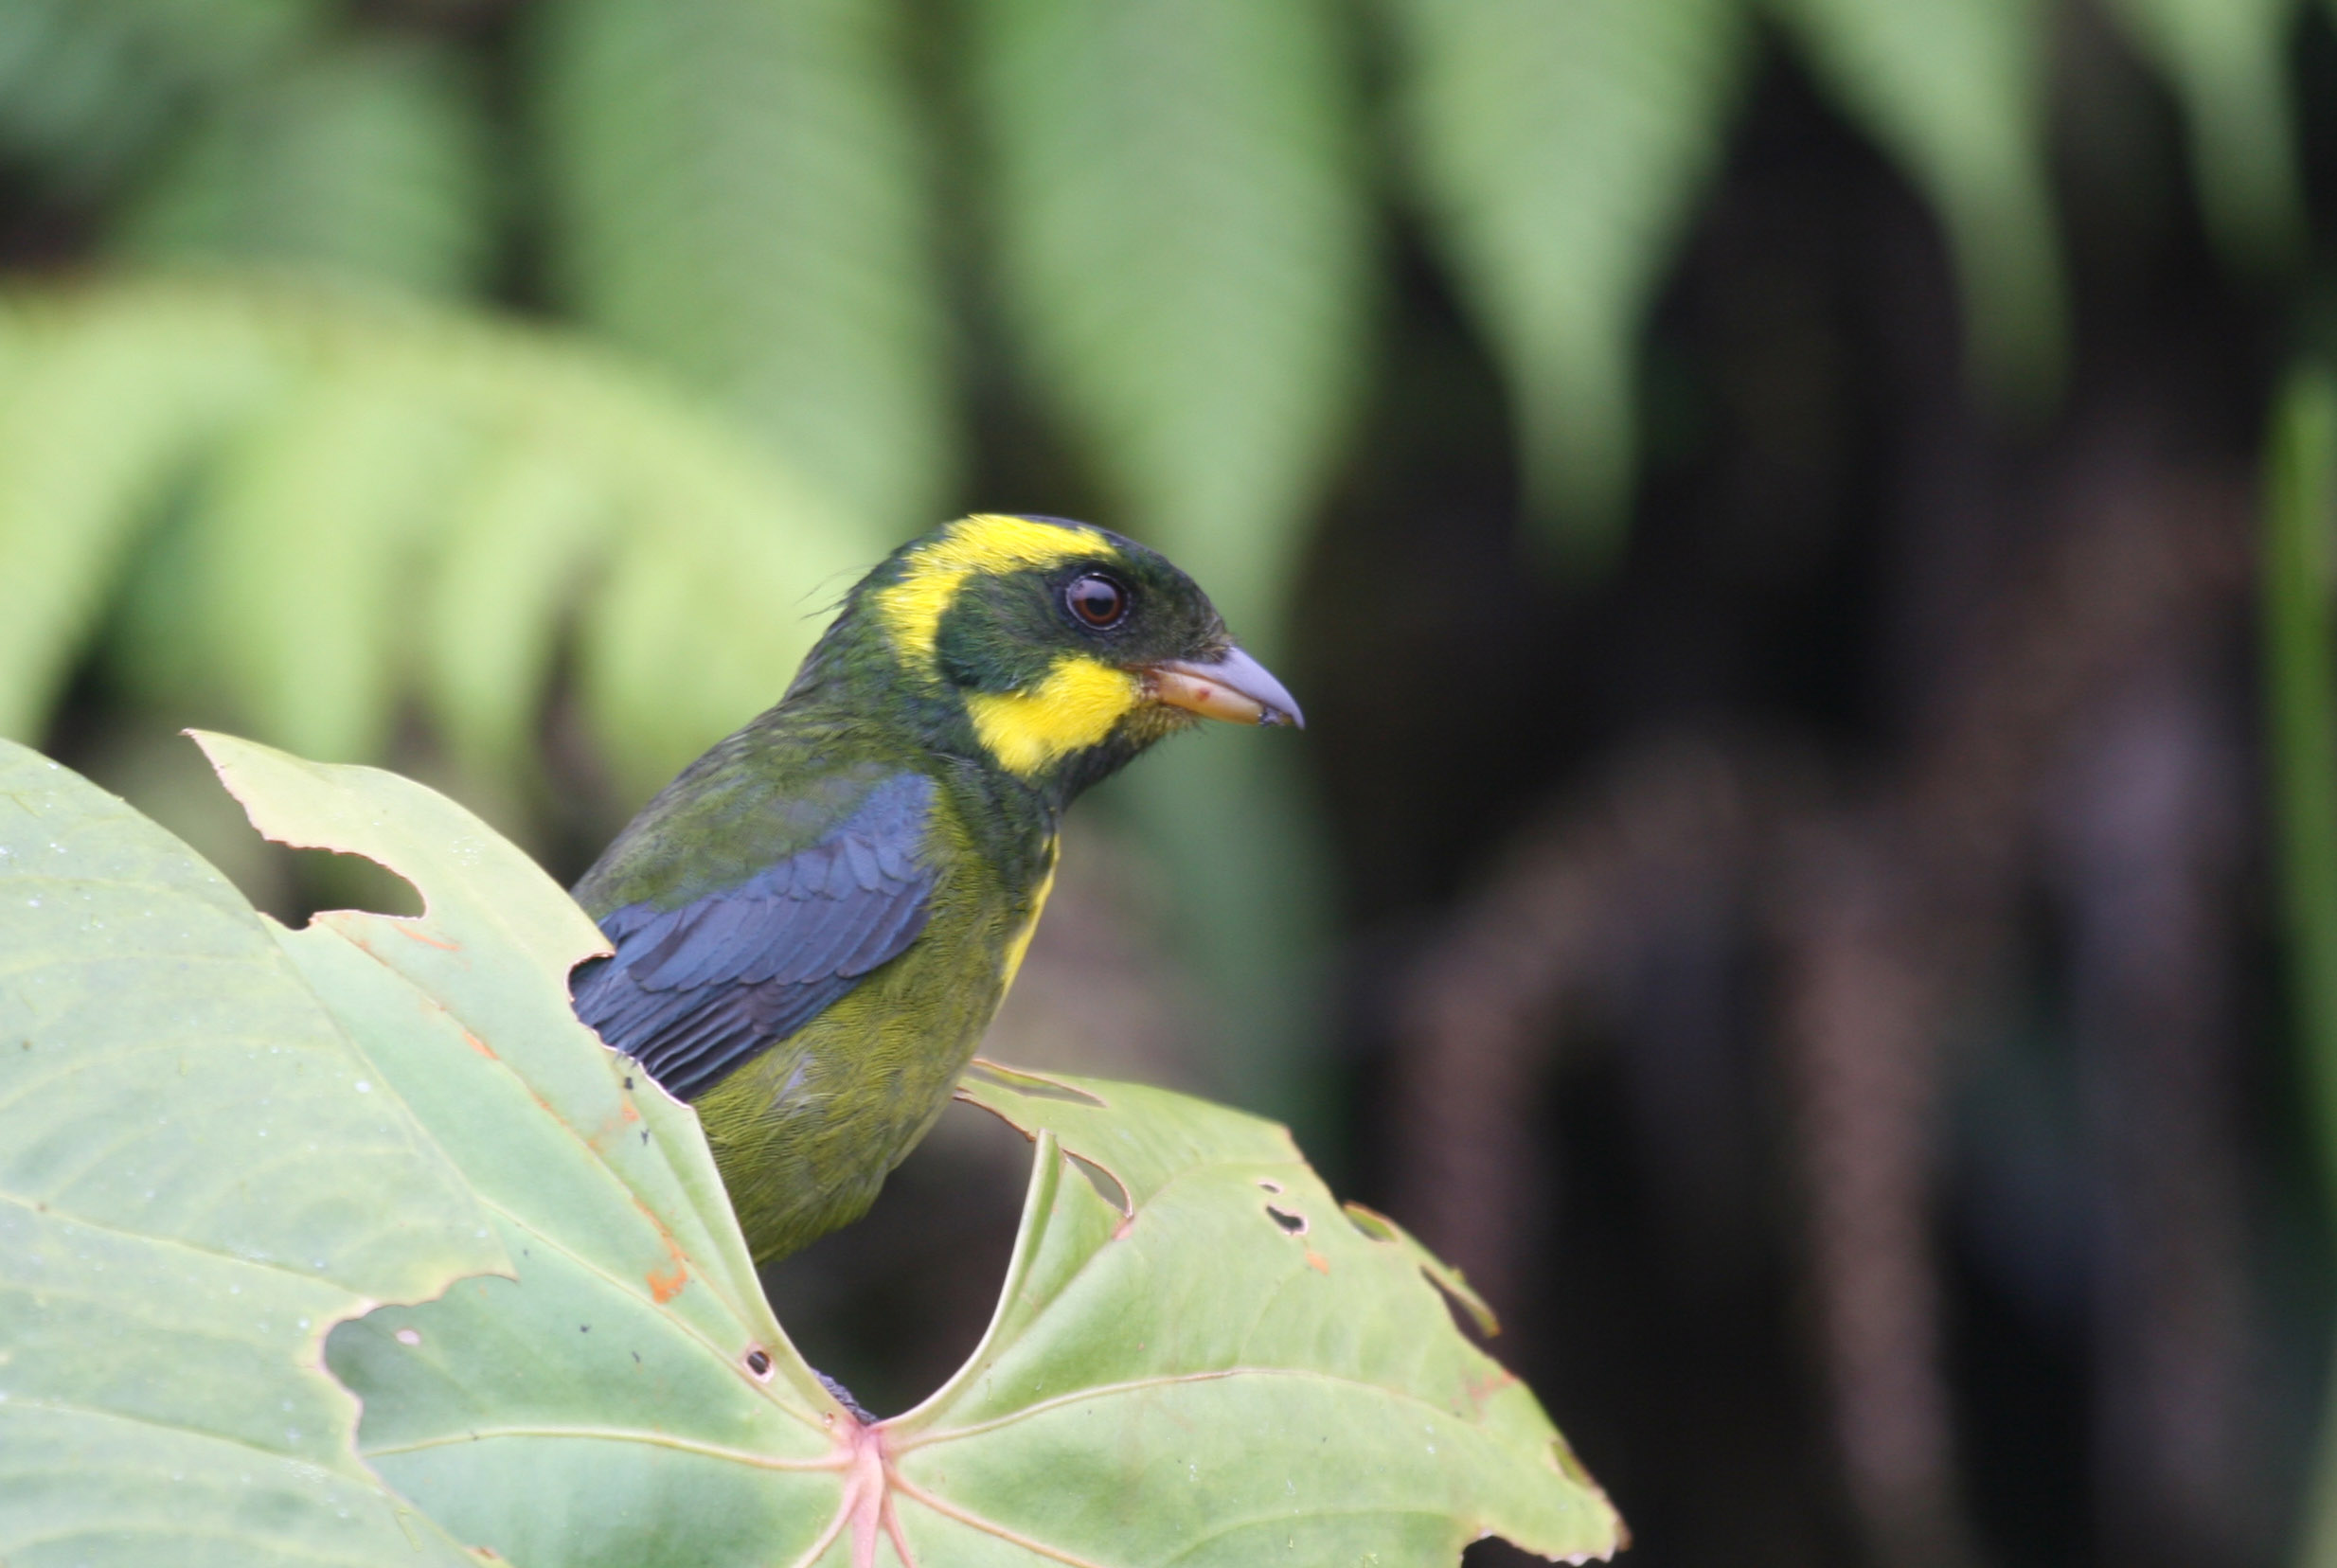 A stunning female Gold-ringed Tanager near her nest